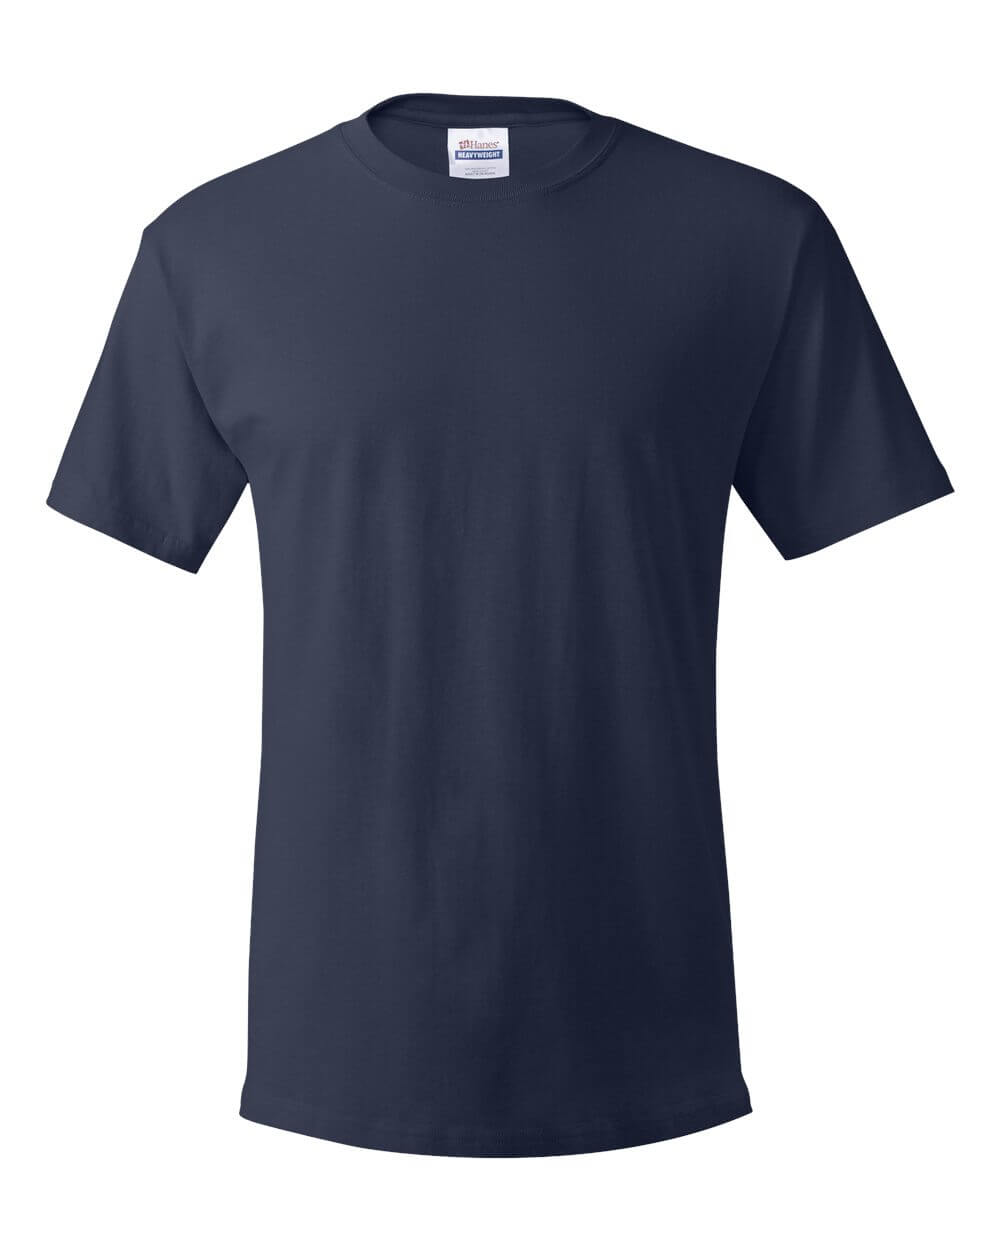 Hanes_5280_Navy Blue Custom T Shirts